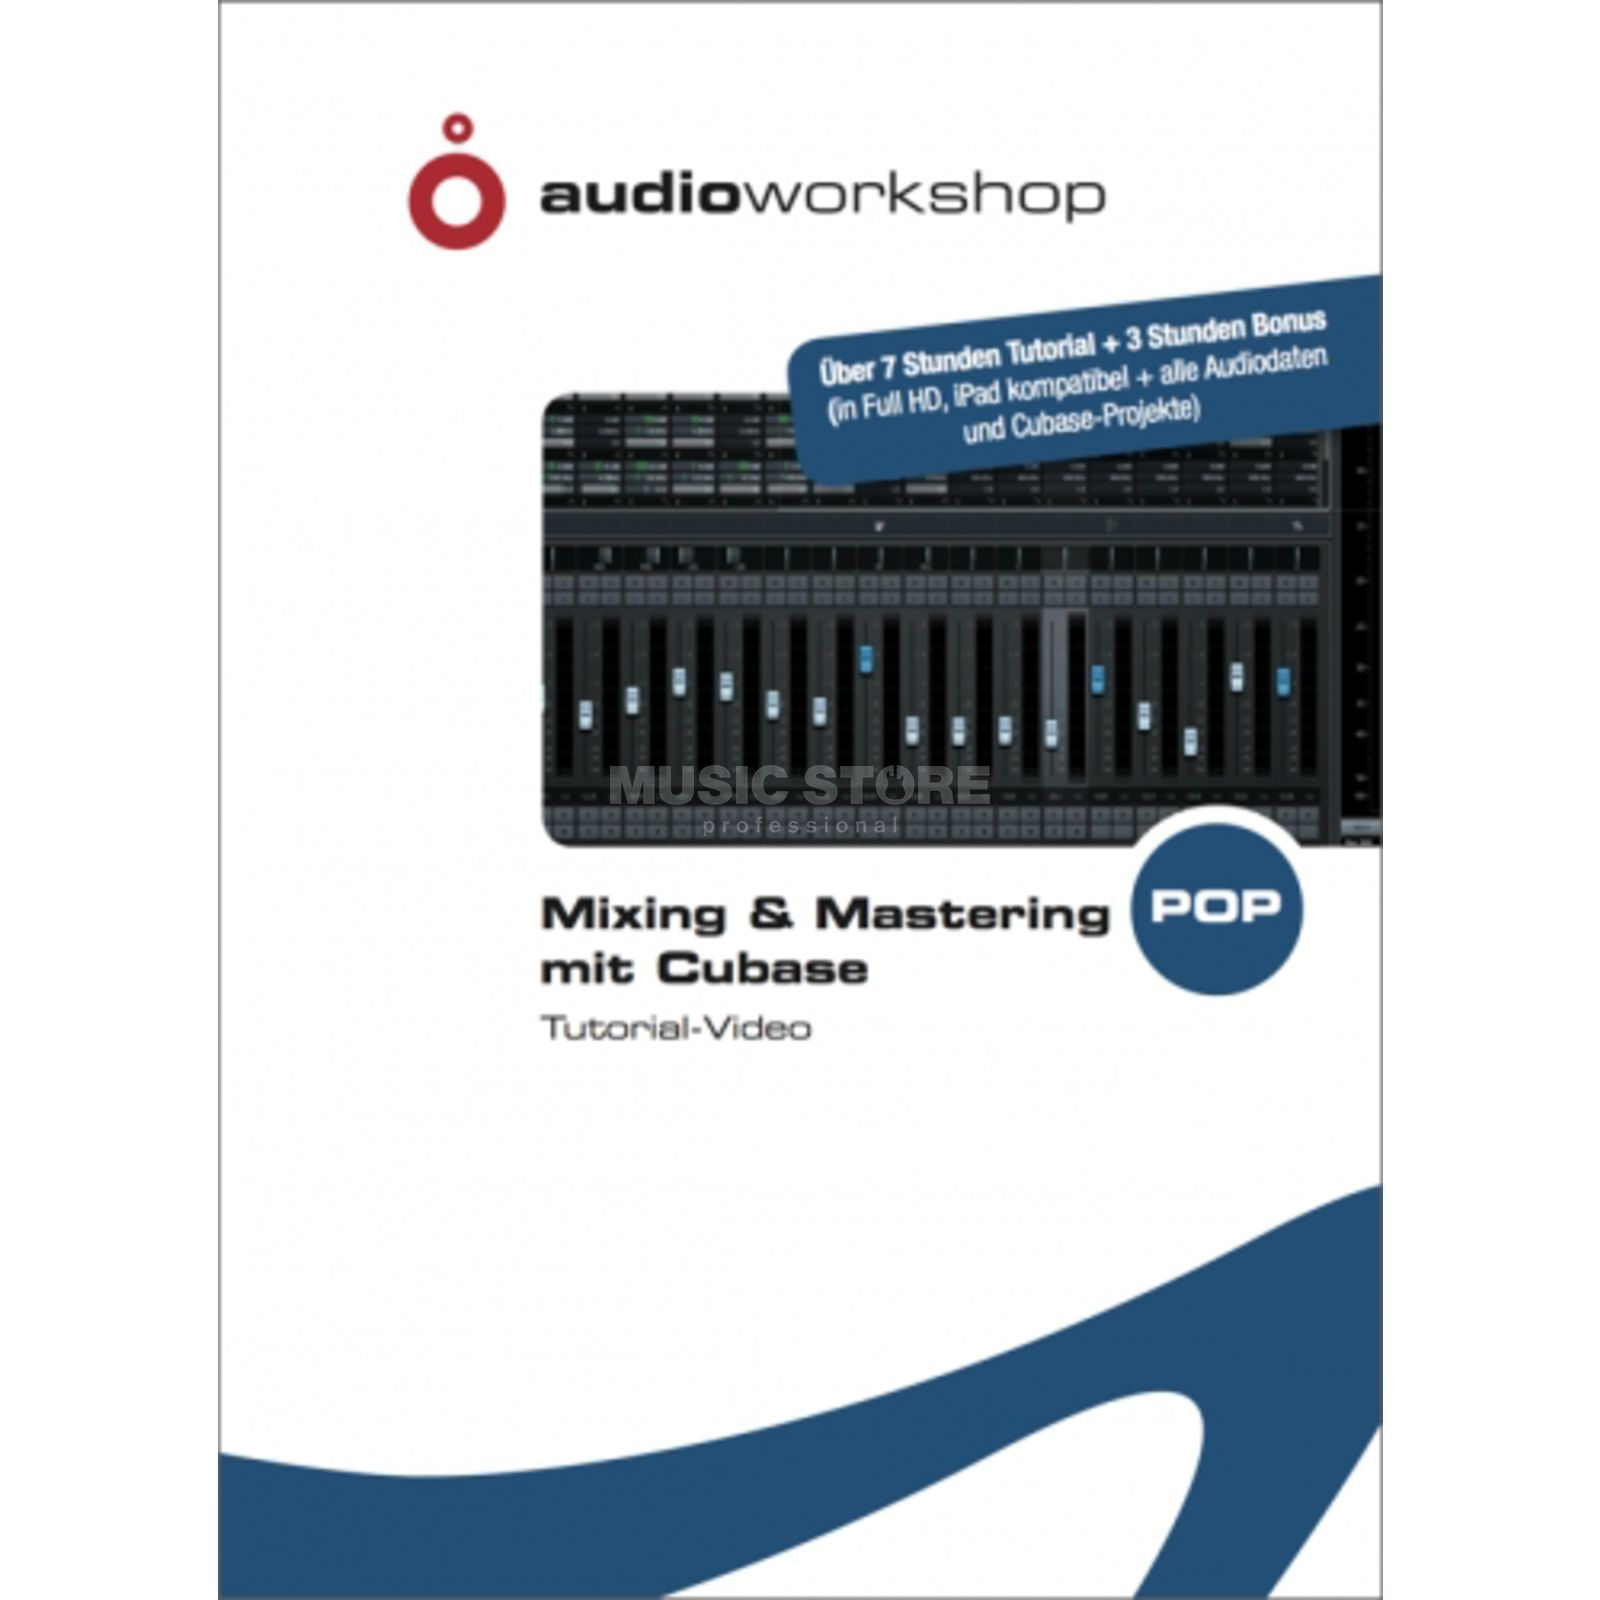 Audio Workshop Mixing & Mastering DVD with Cubase Tutorial-Video Produktbillede